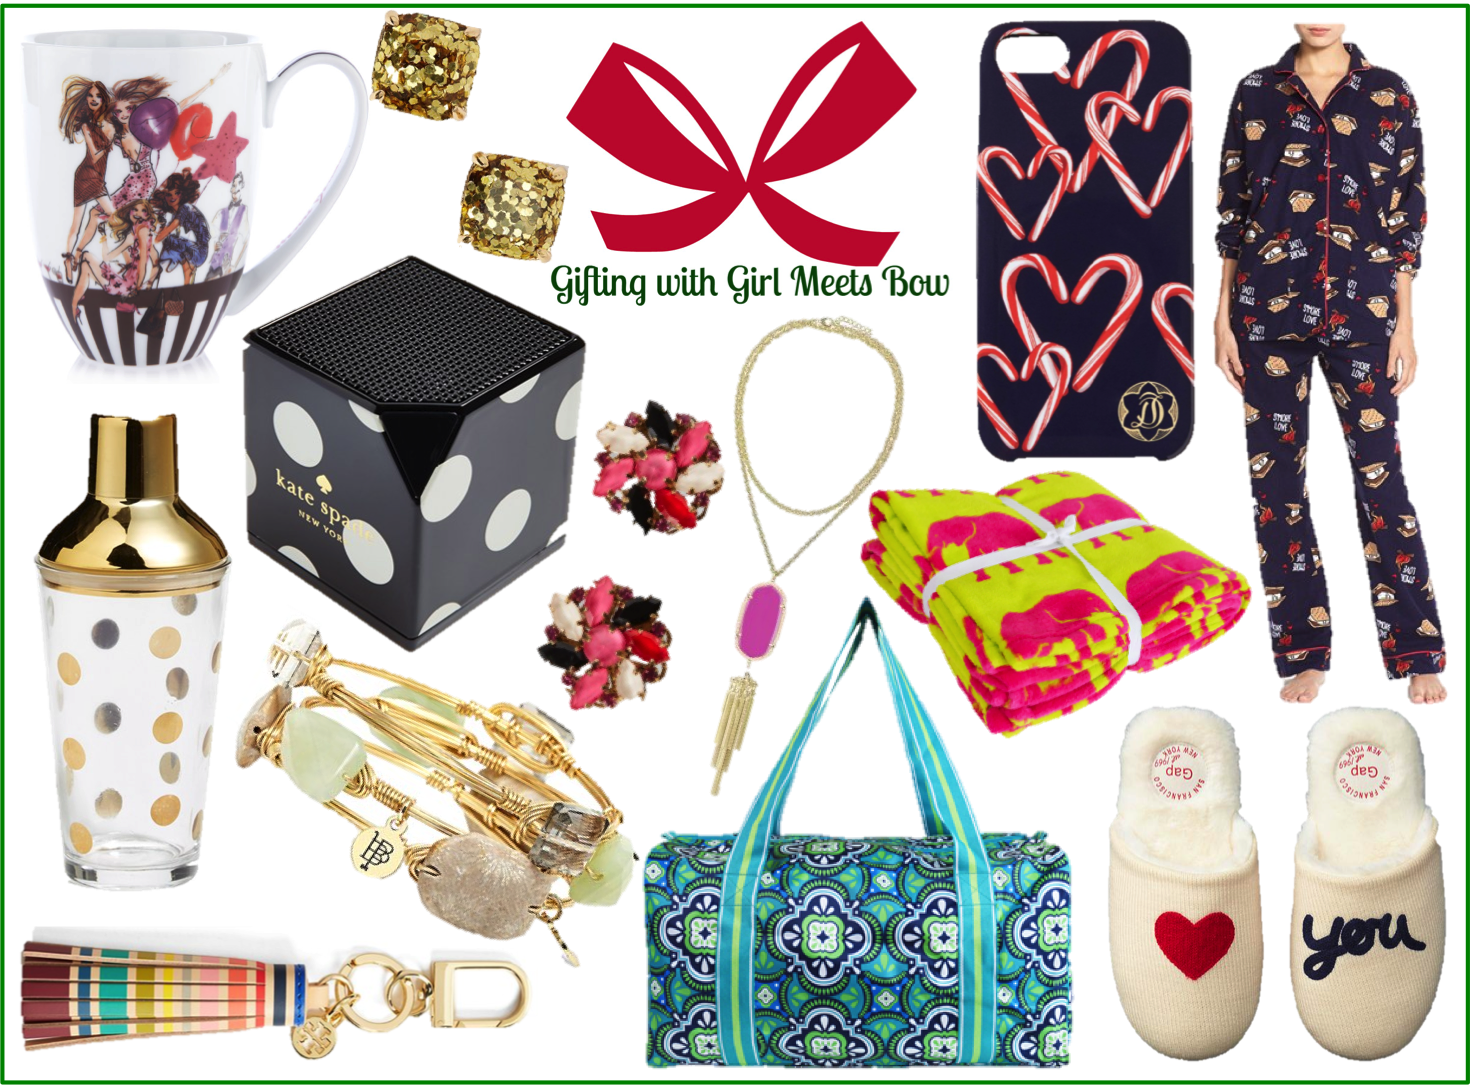 Gifting with Girl Meets Bow: For Her